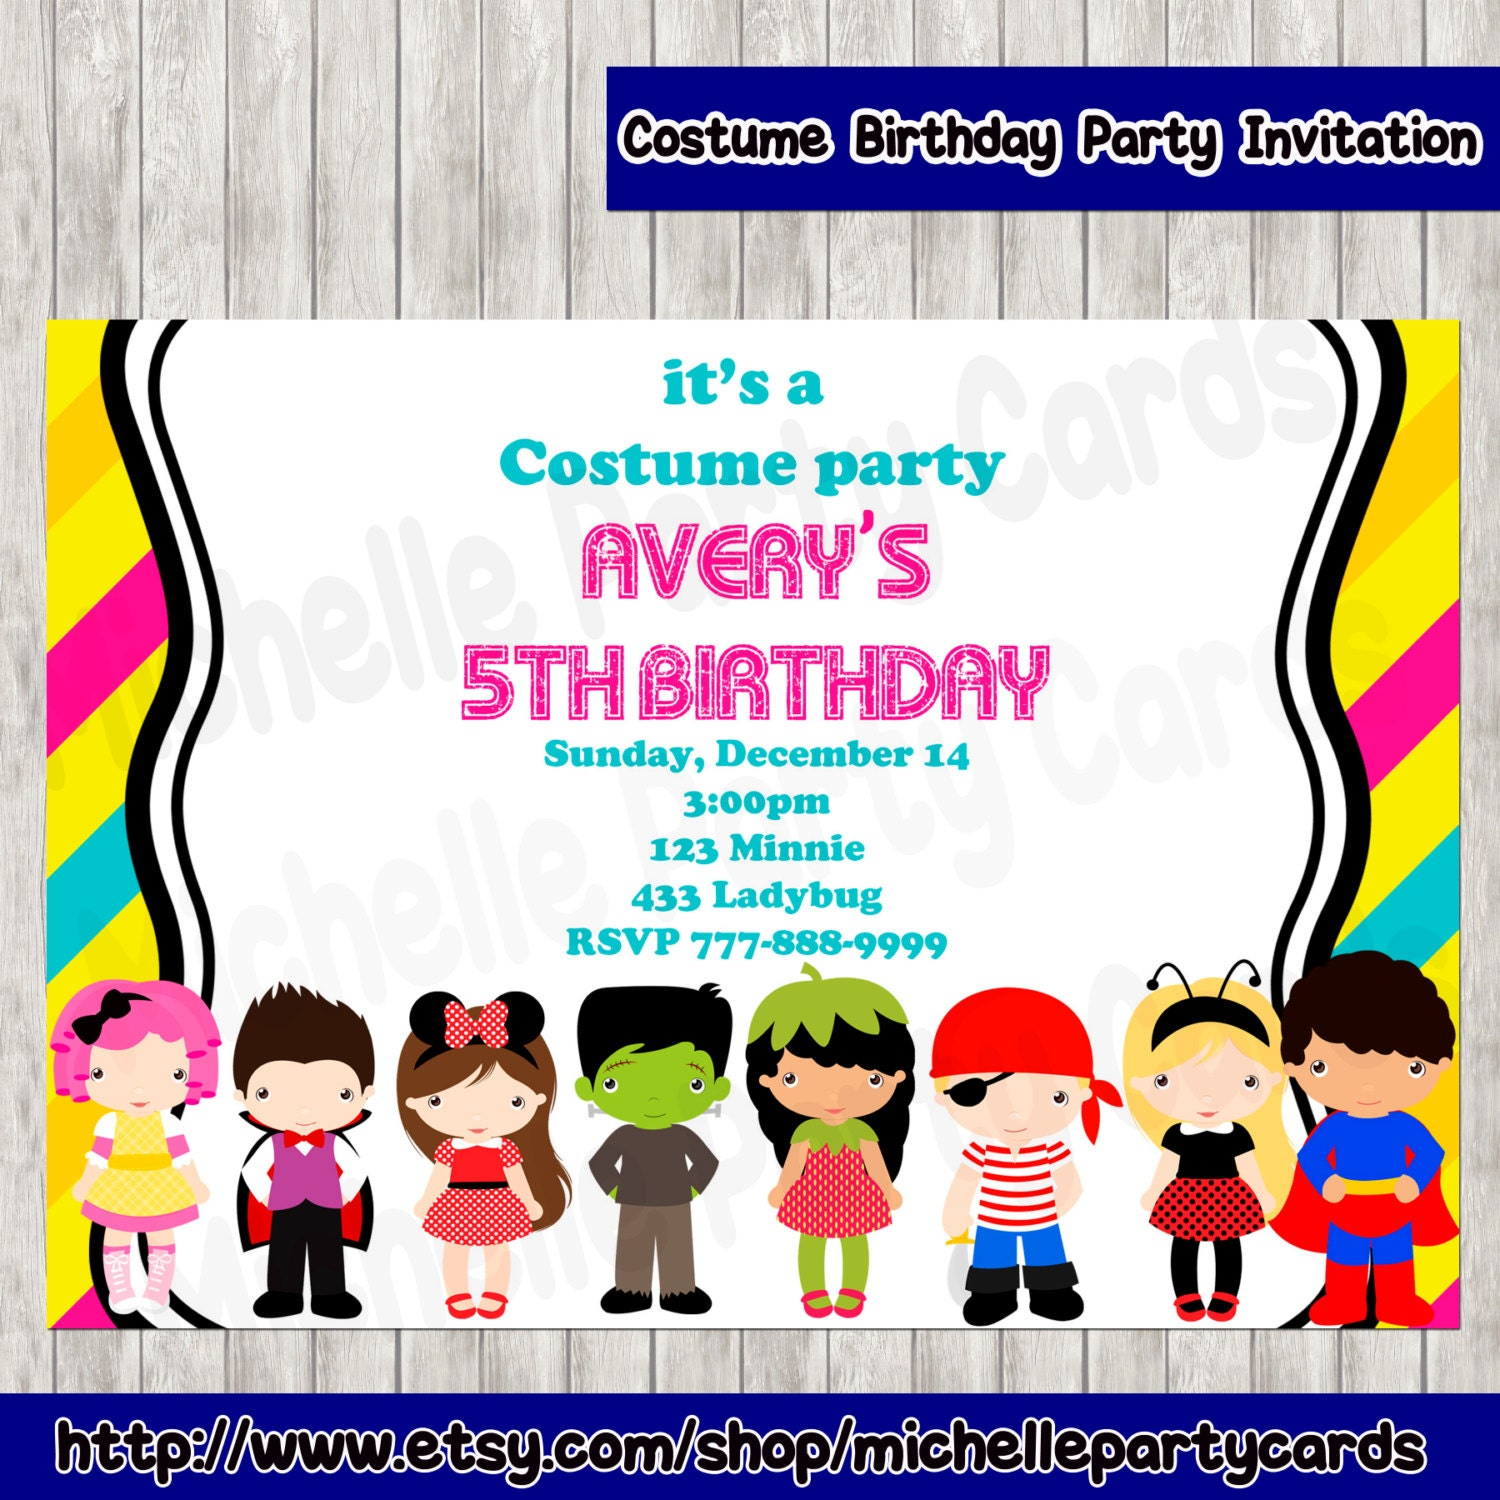 Costume Birthday Party Invitation by michellepartycards on ...